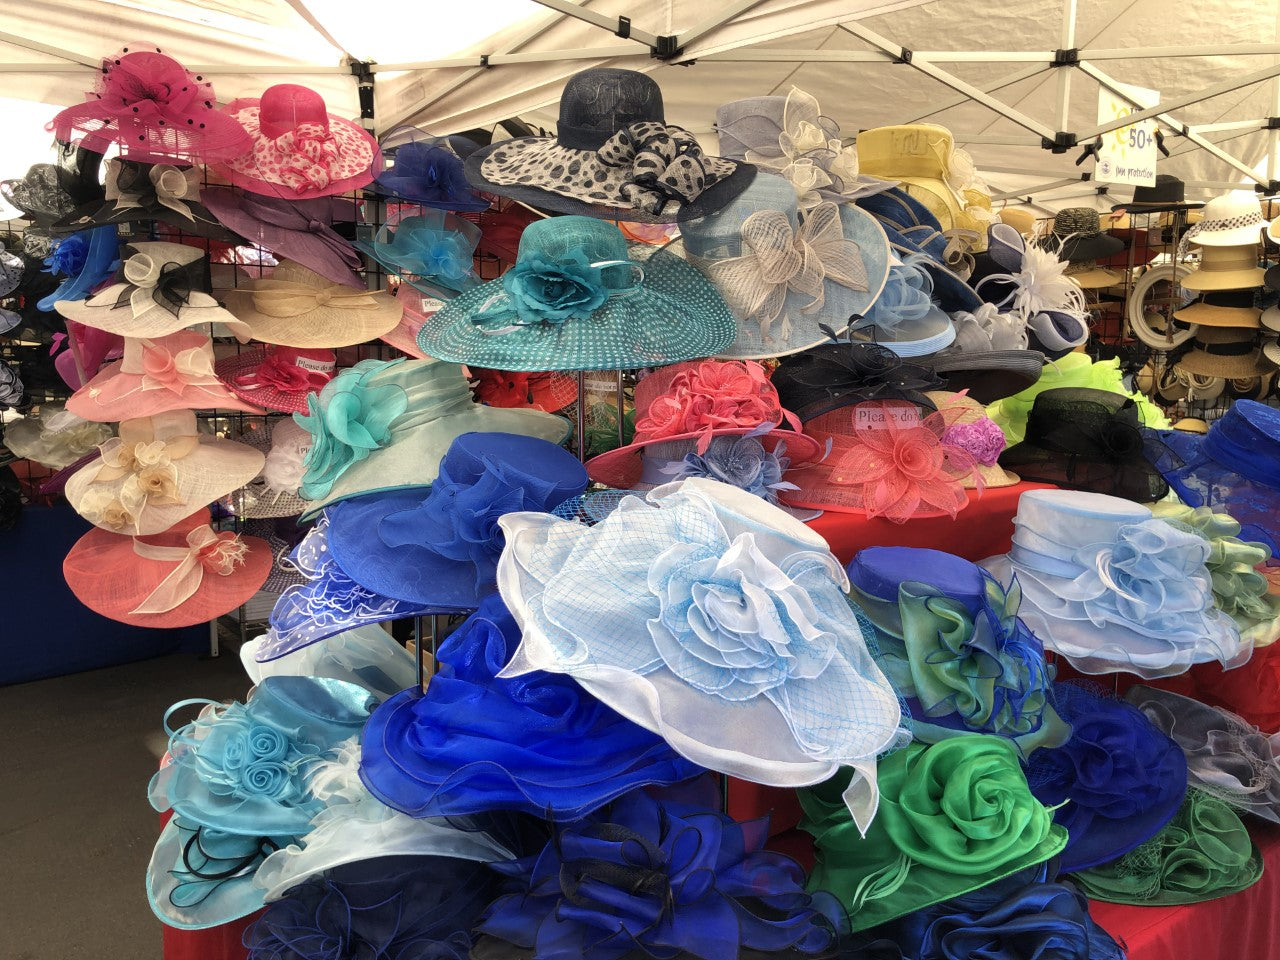 st patrick's day pop up hat shop. outdoor fun in palm desert california. andrea's hat shop